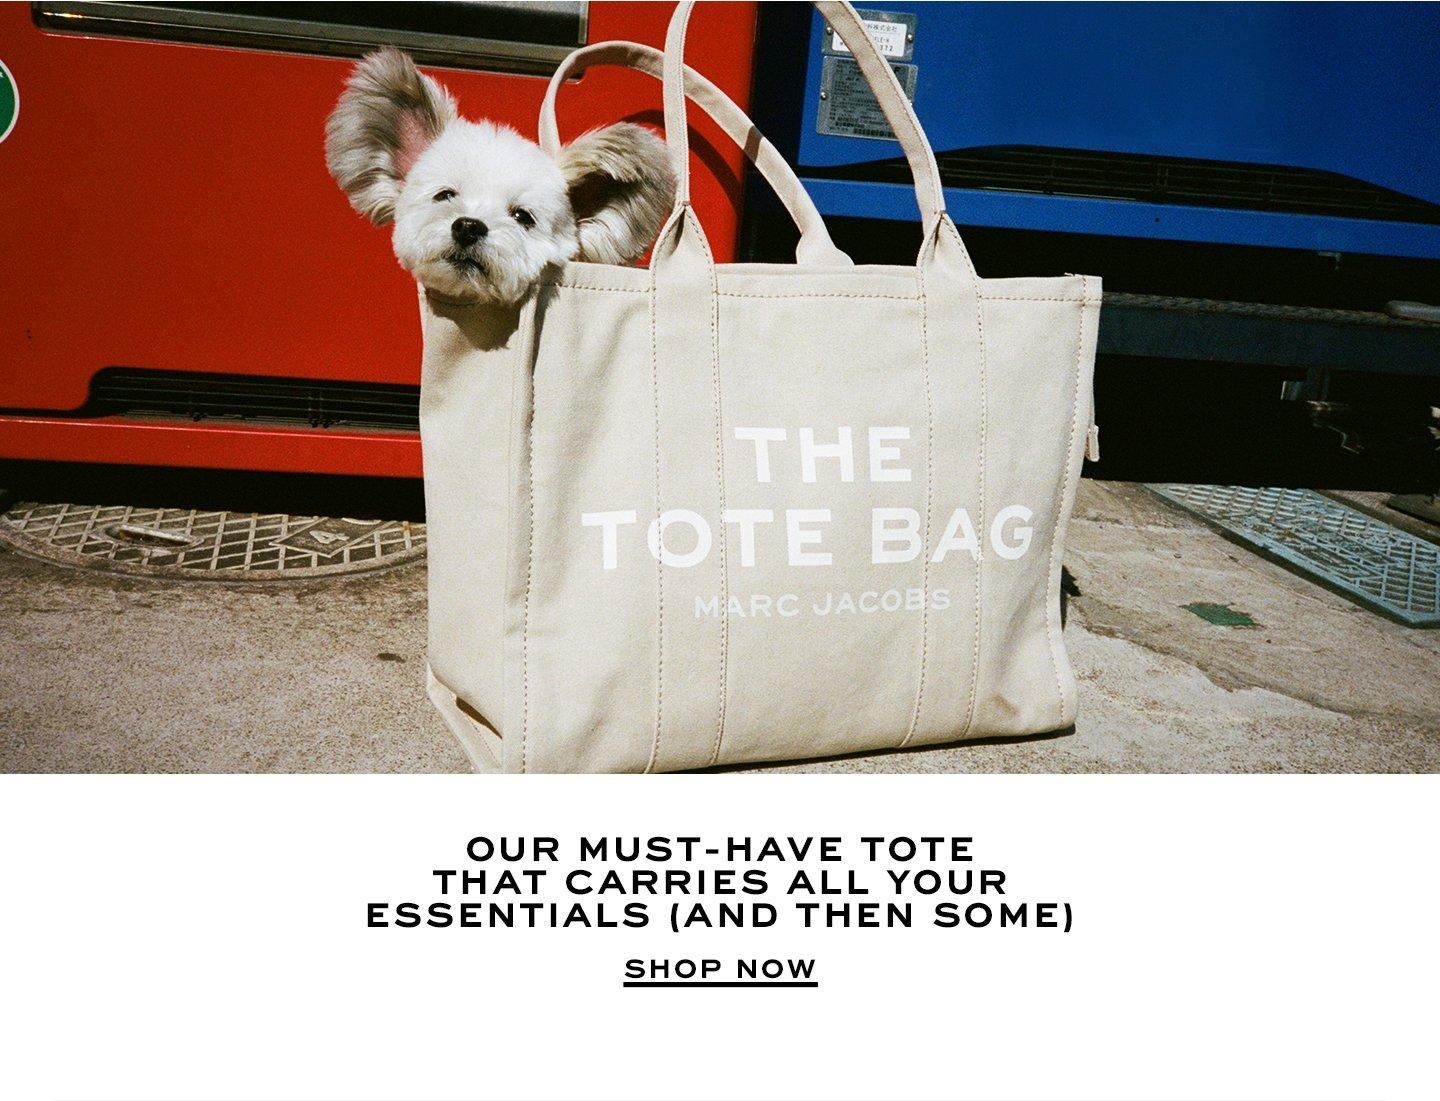 Our must-have tote that carries all your essentials (and then some). Shop Now.